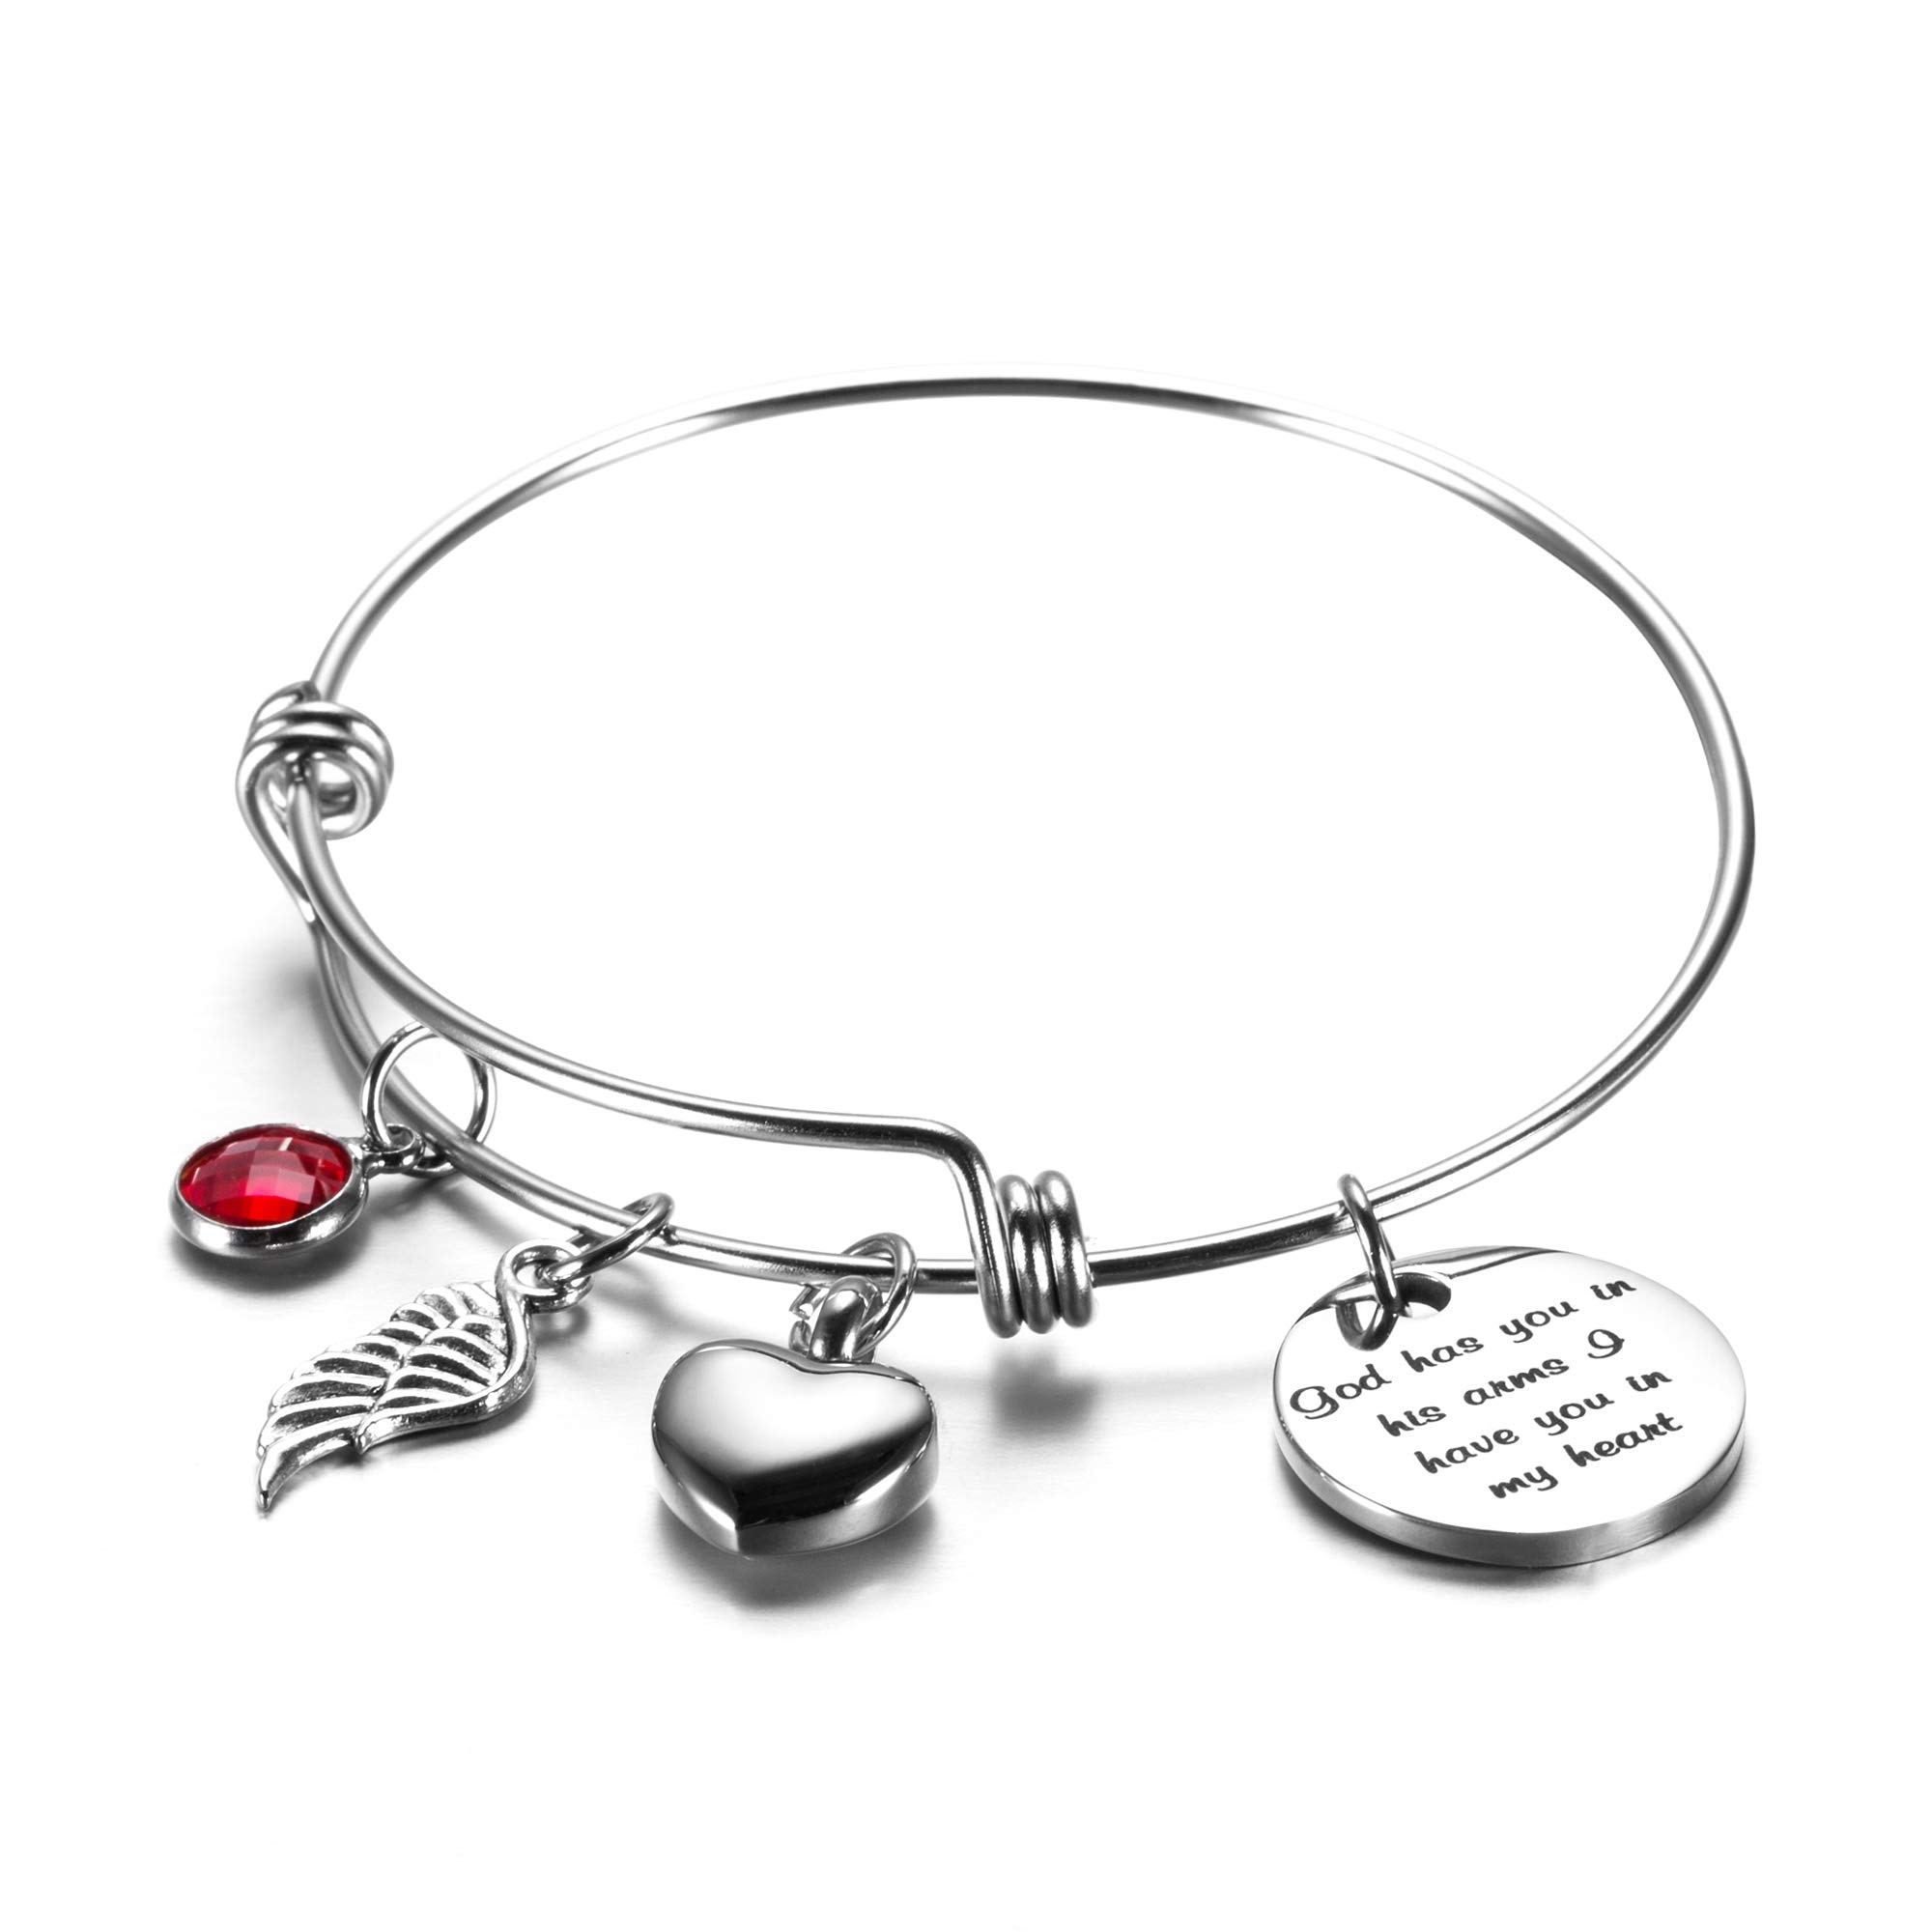 Urn Bracelet God has You in his arm Cremation Jewelry for Ashes Memories Bracelet for Women Mom Sympathy Gift (God has You in his arm)